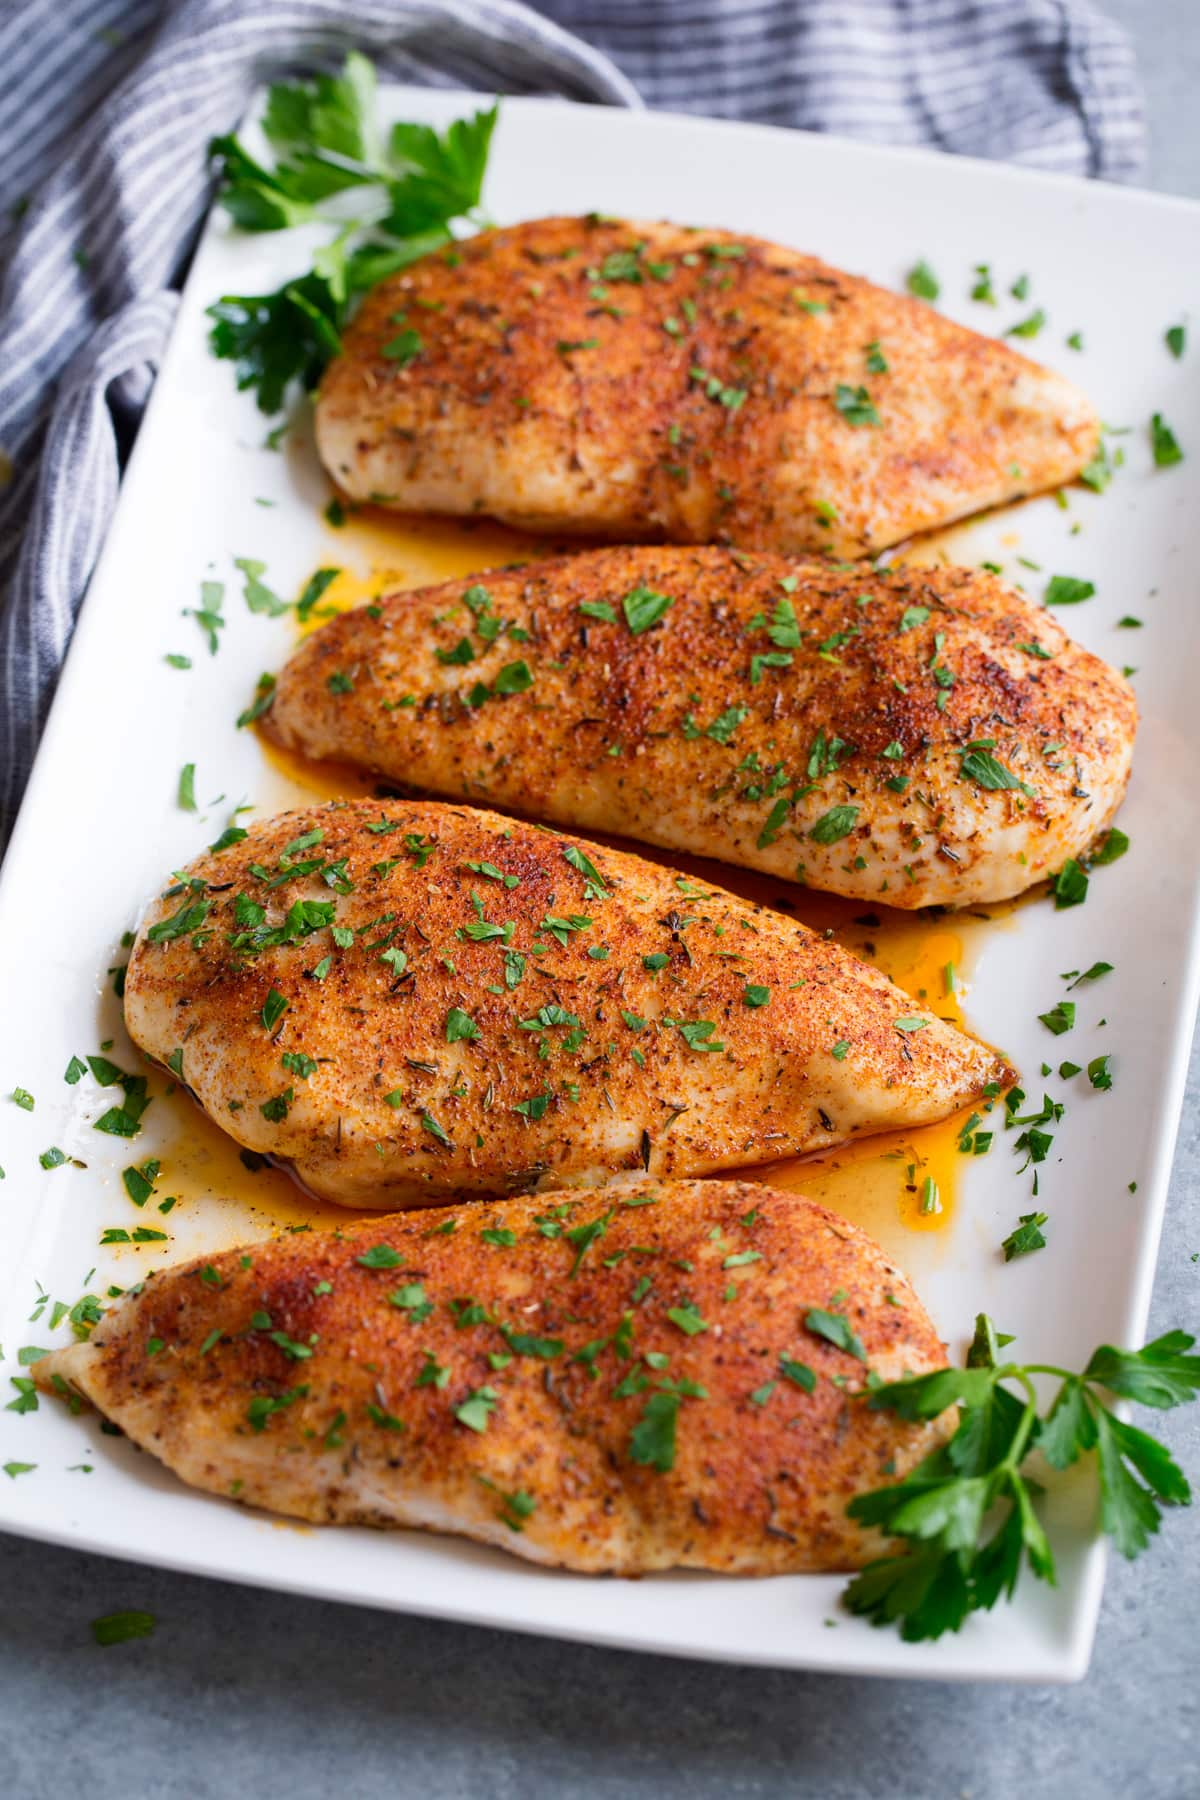 Four seasoned baked chicken breasts on a white rectangular serving platter garnished with parsley.